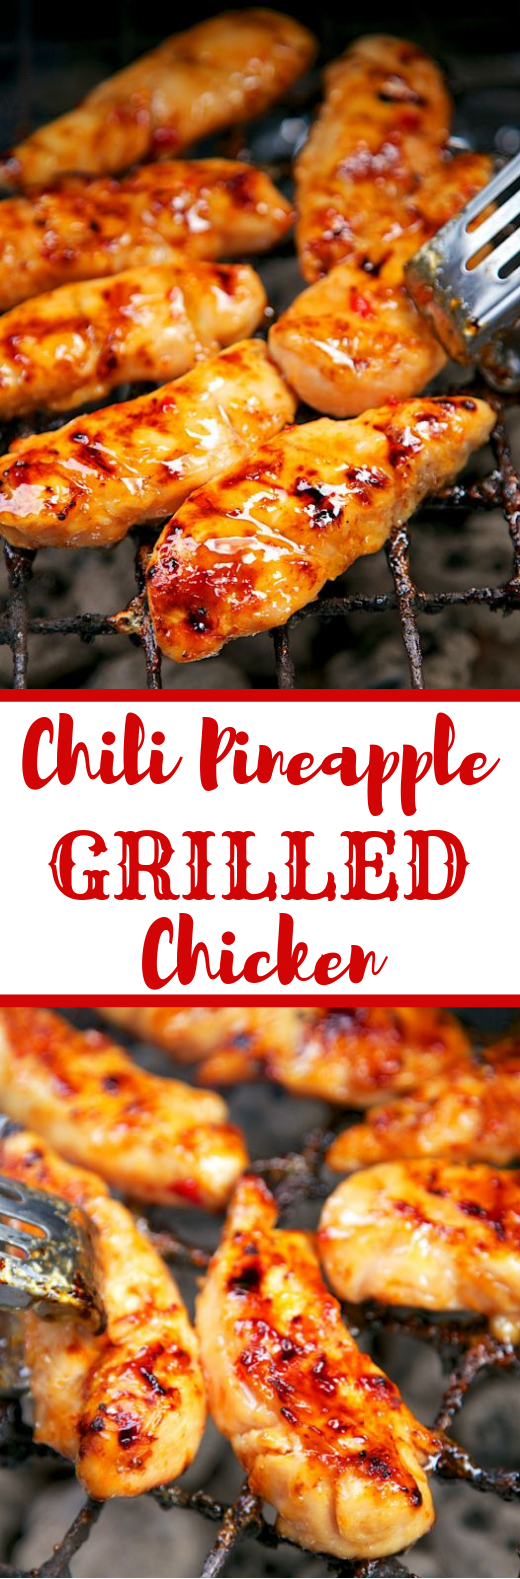 CHILI PINEAPPLE GRILLED CHICKEN #Dinner #Grill